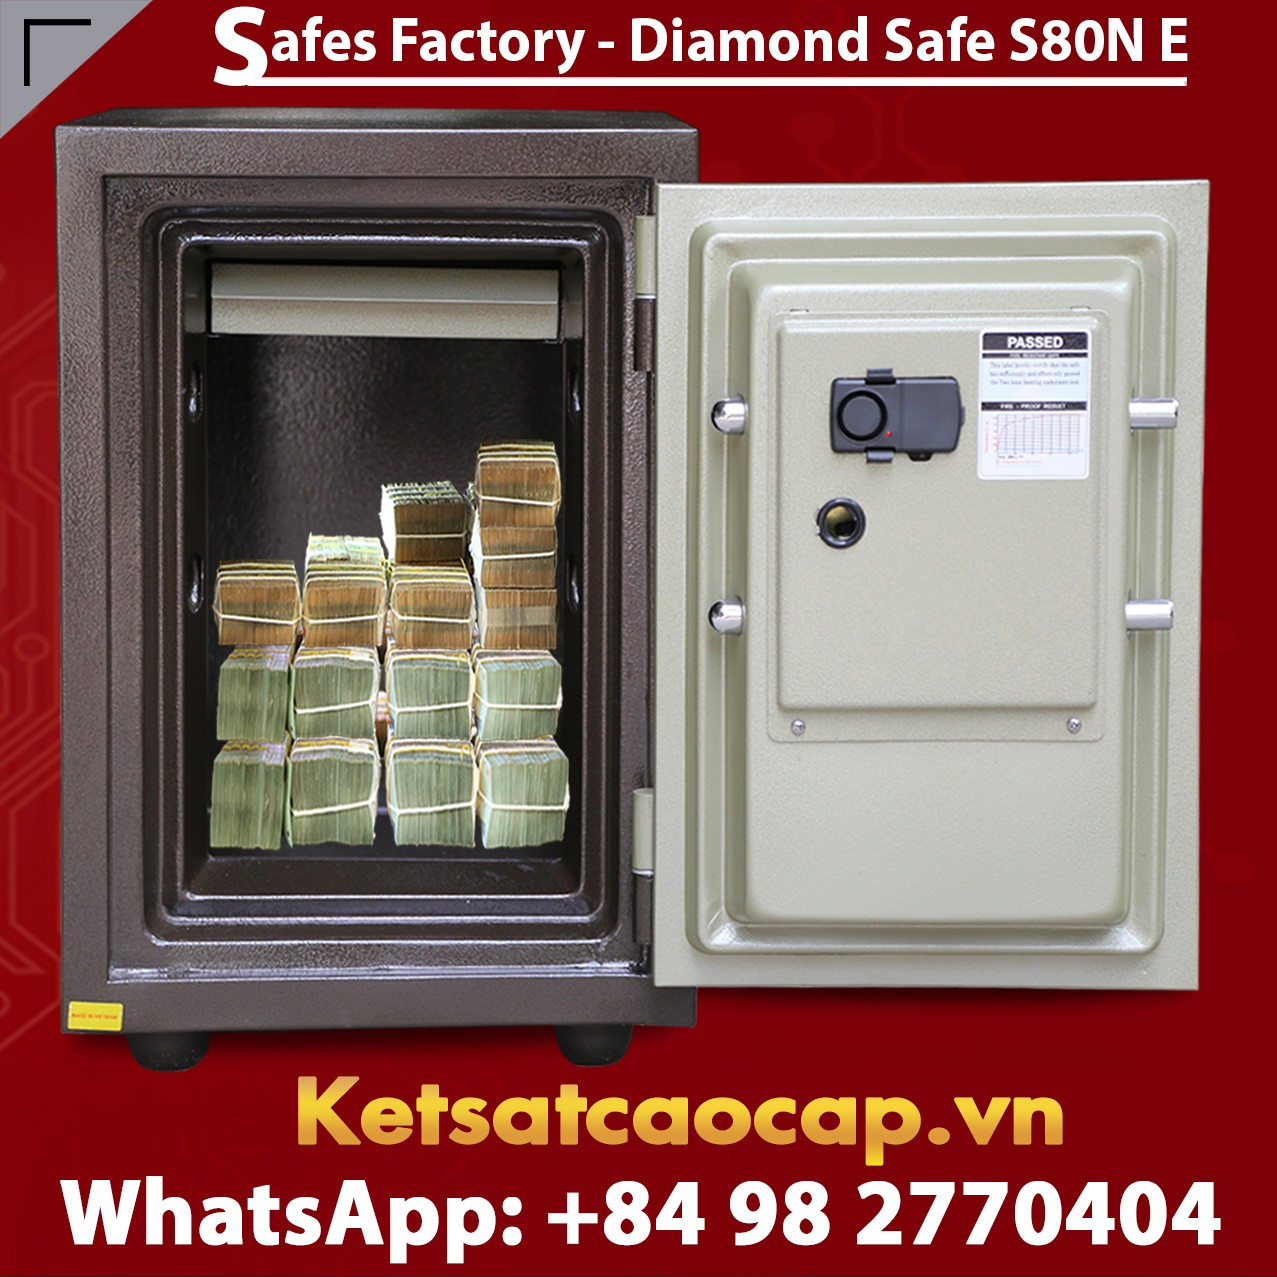 OFFICE SAFE S80D E